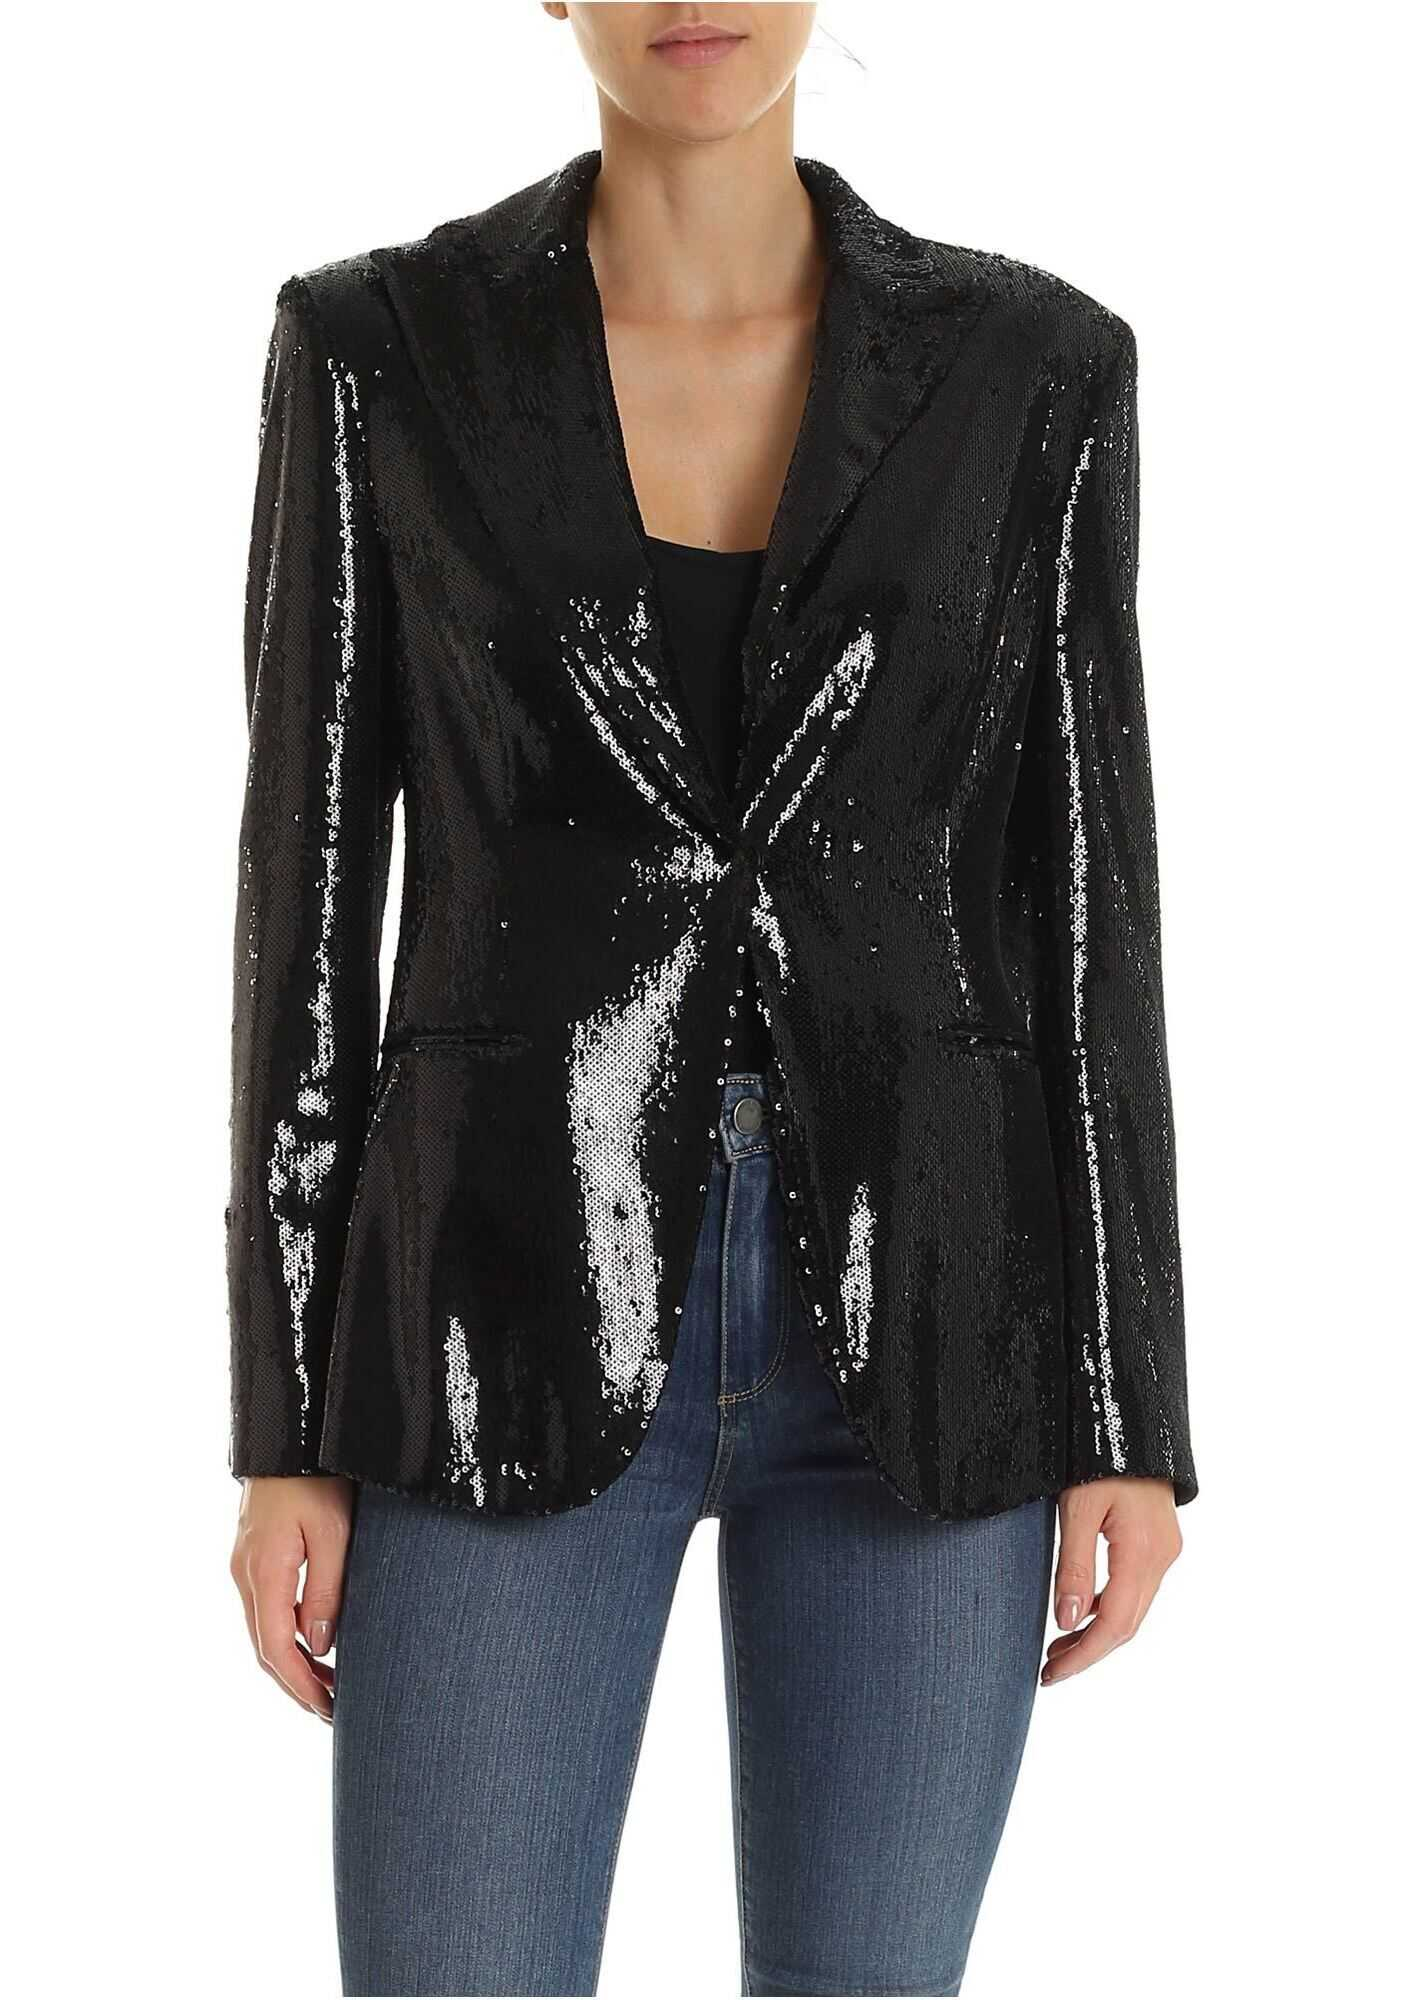 Sequined Single-Breasted Jacket In Black thumbnail